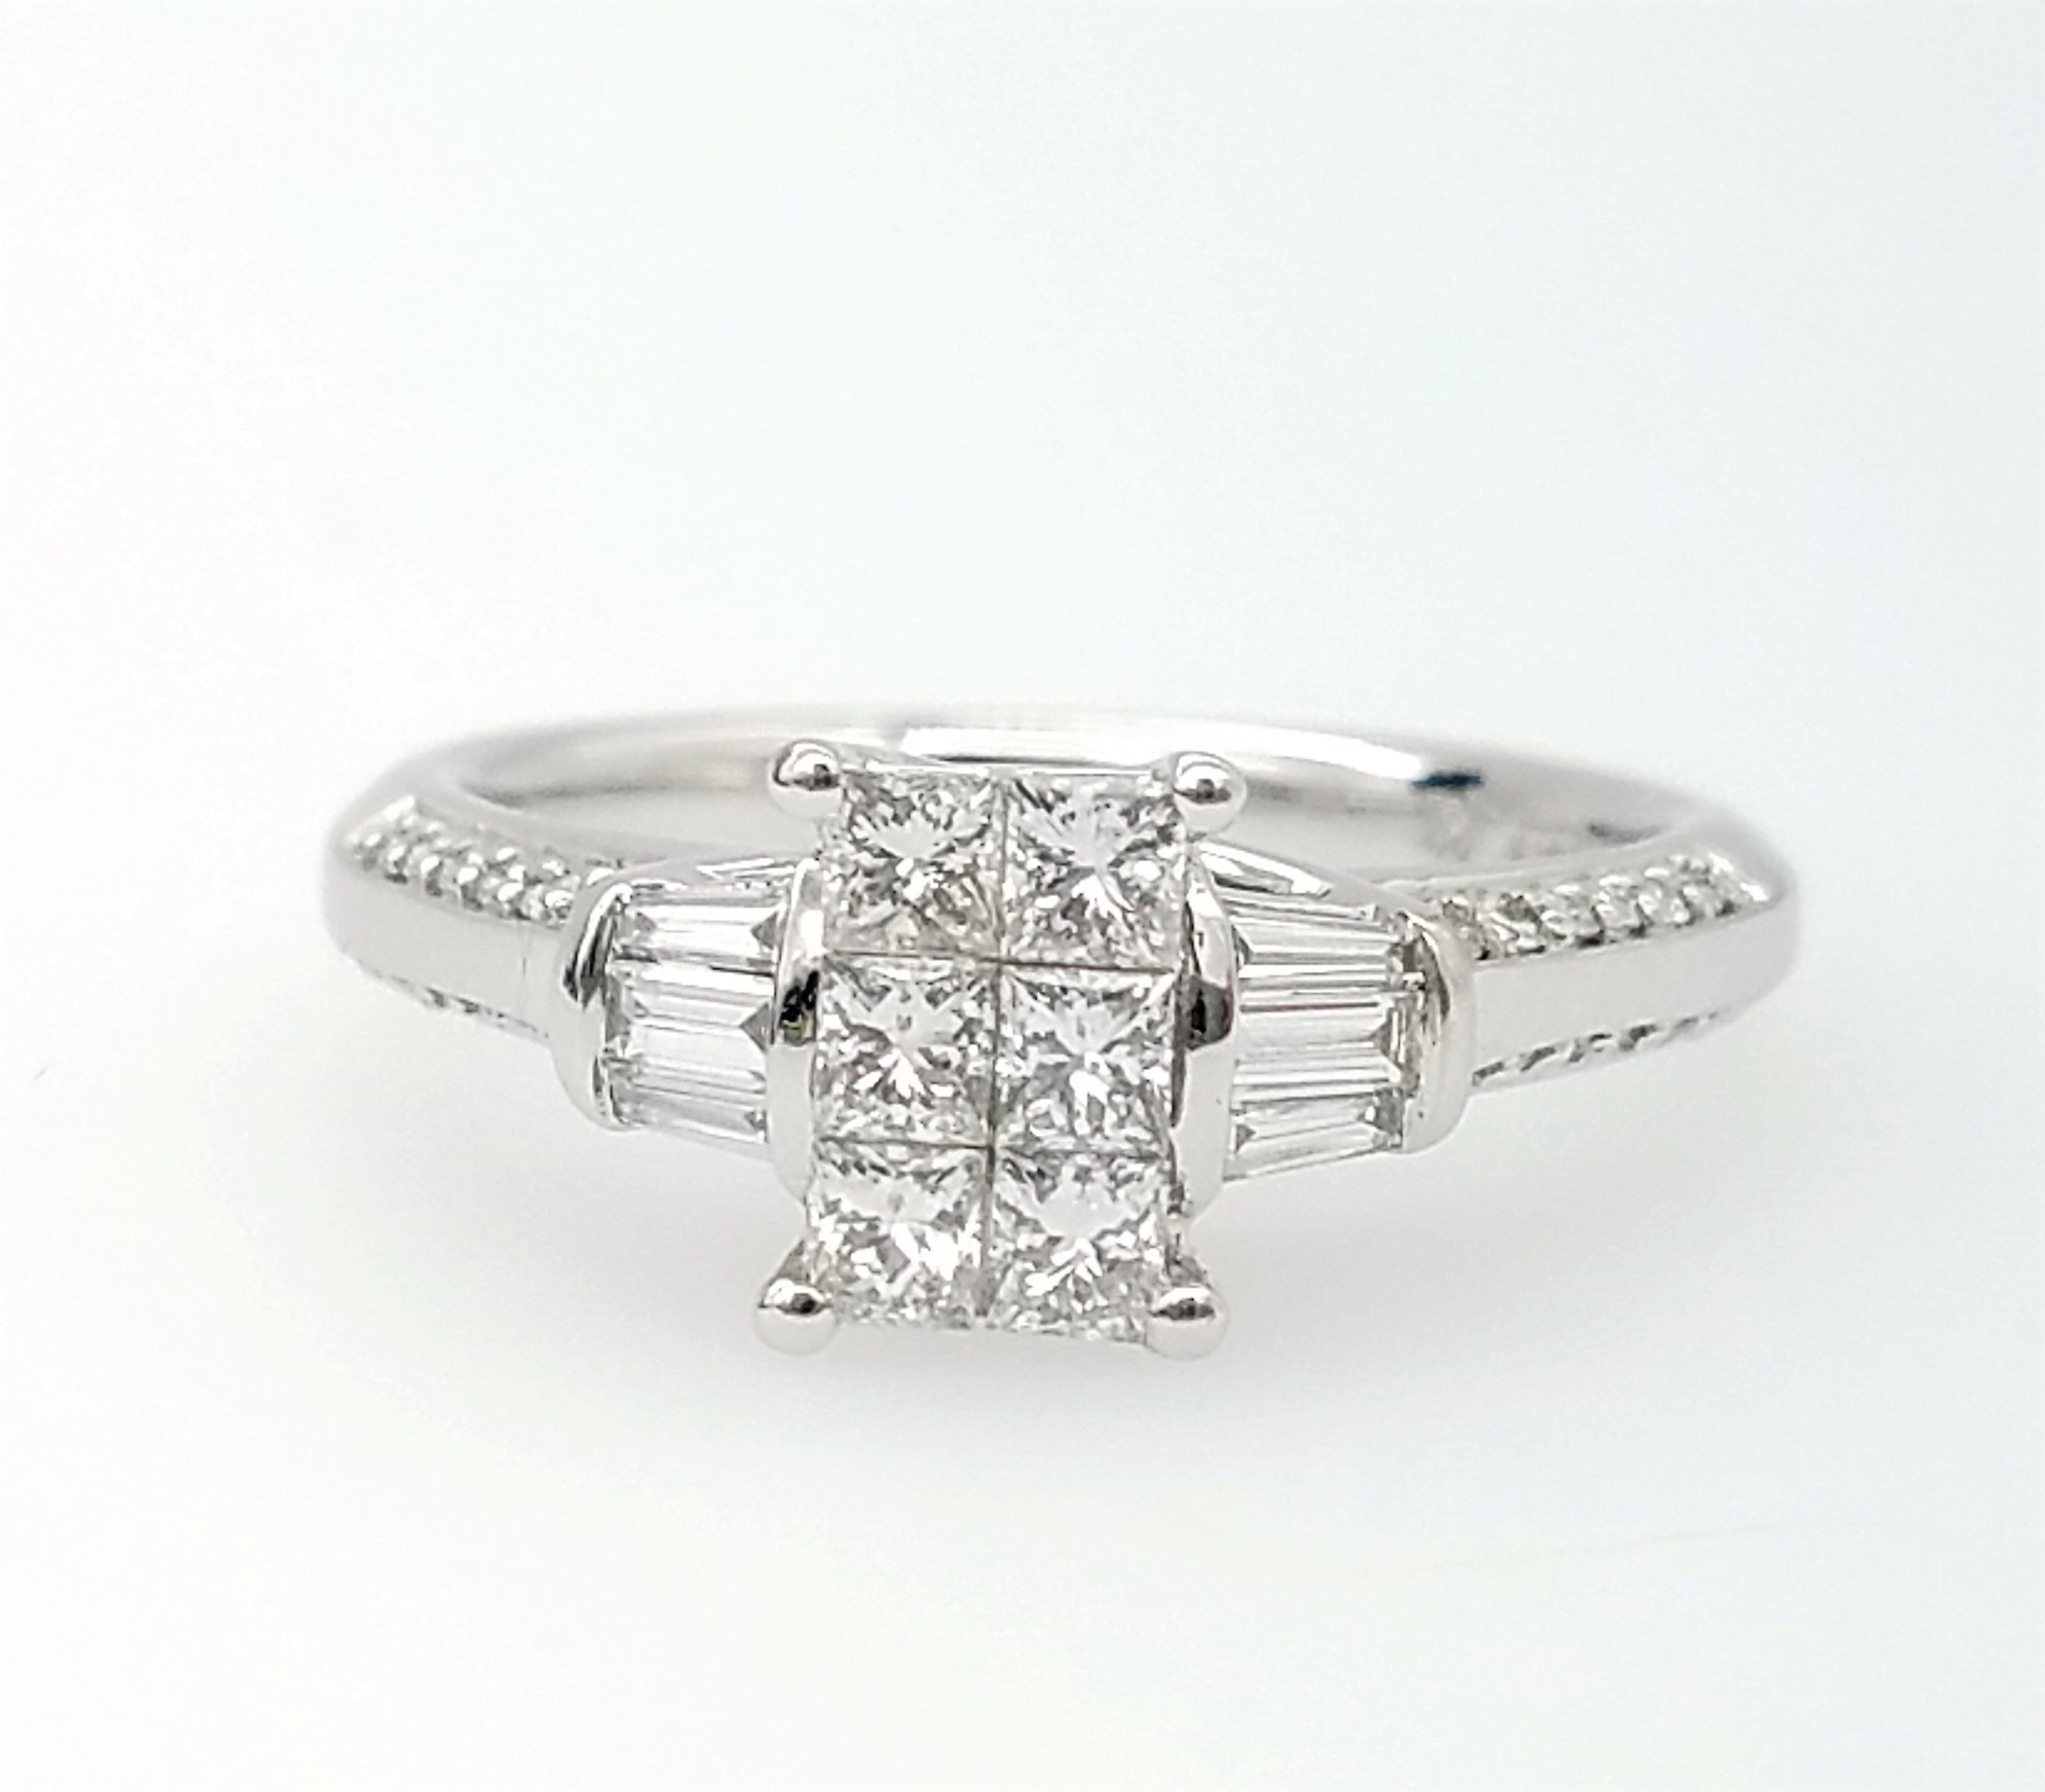 Vintage 14K Princess & Baguette Cut Diamond Cluster 14K White Gold  Engagement Or Cocktail Ring 14K White Gold – Size 7 With Most Current Baguette And Round Diamond Weaved Anniversary Rings In White Gold (Gallery 22 of 25)